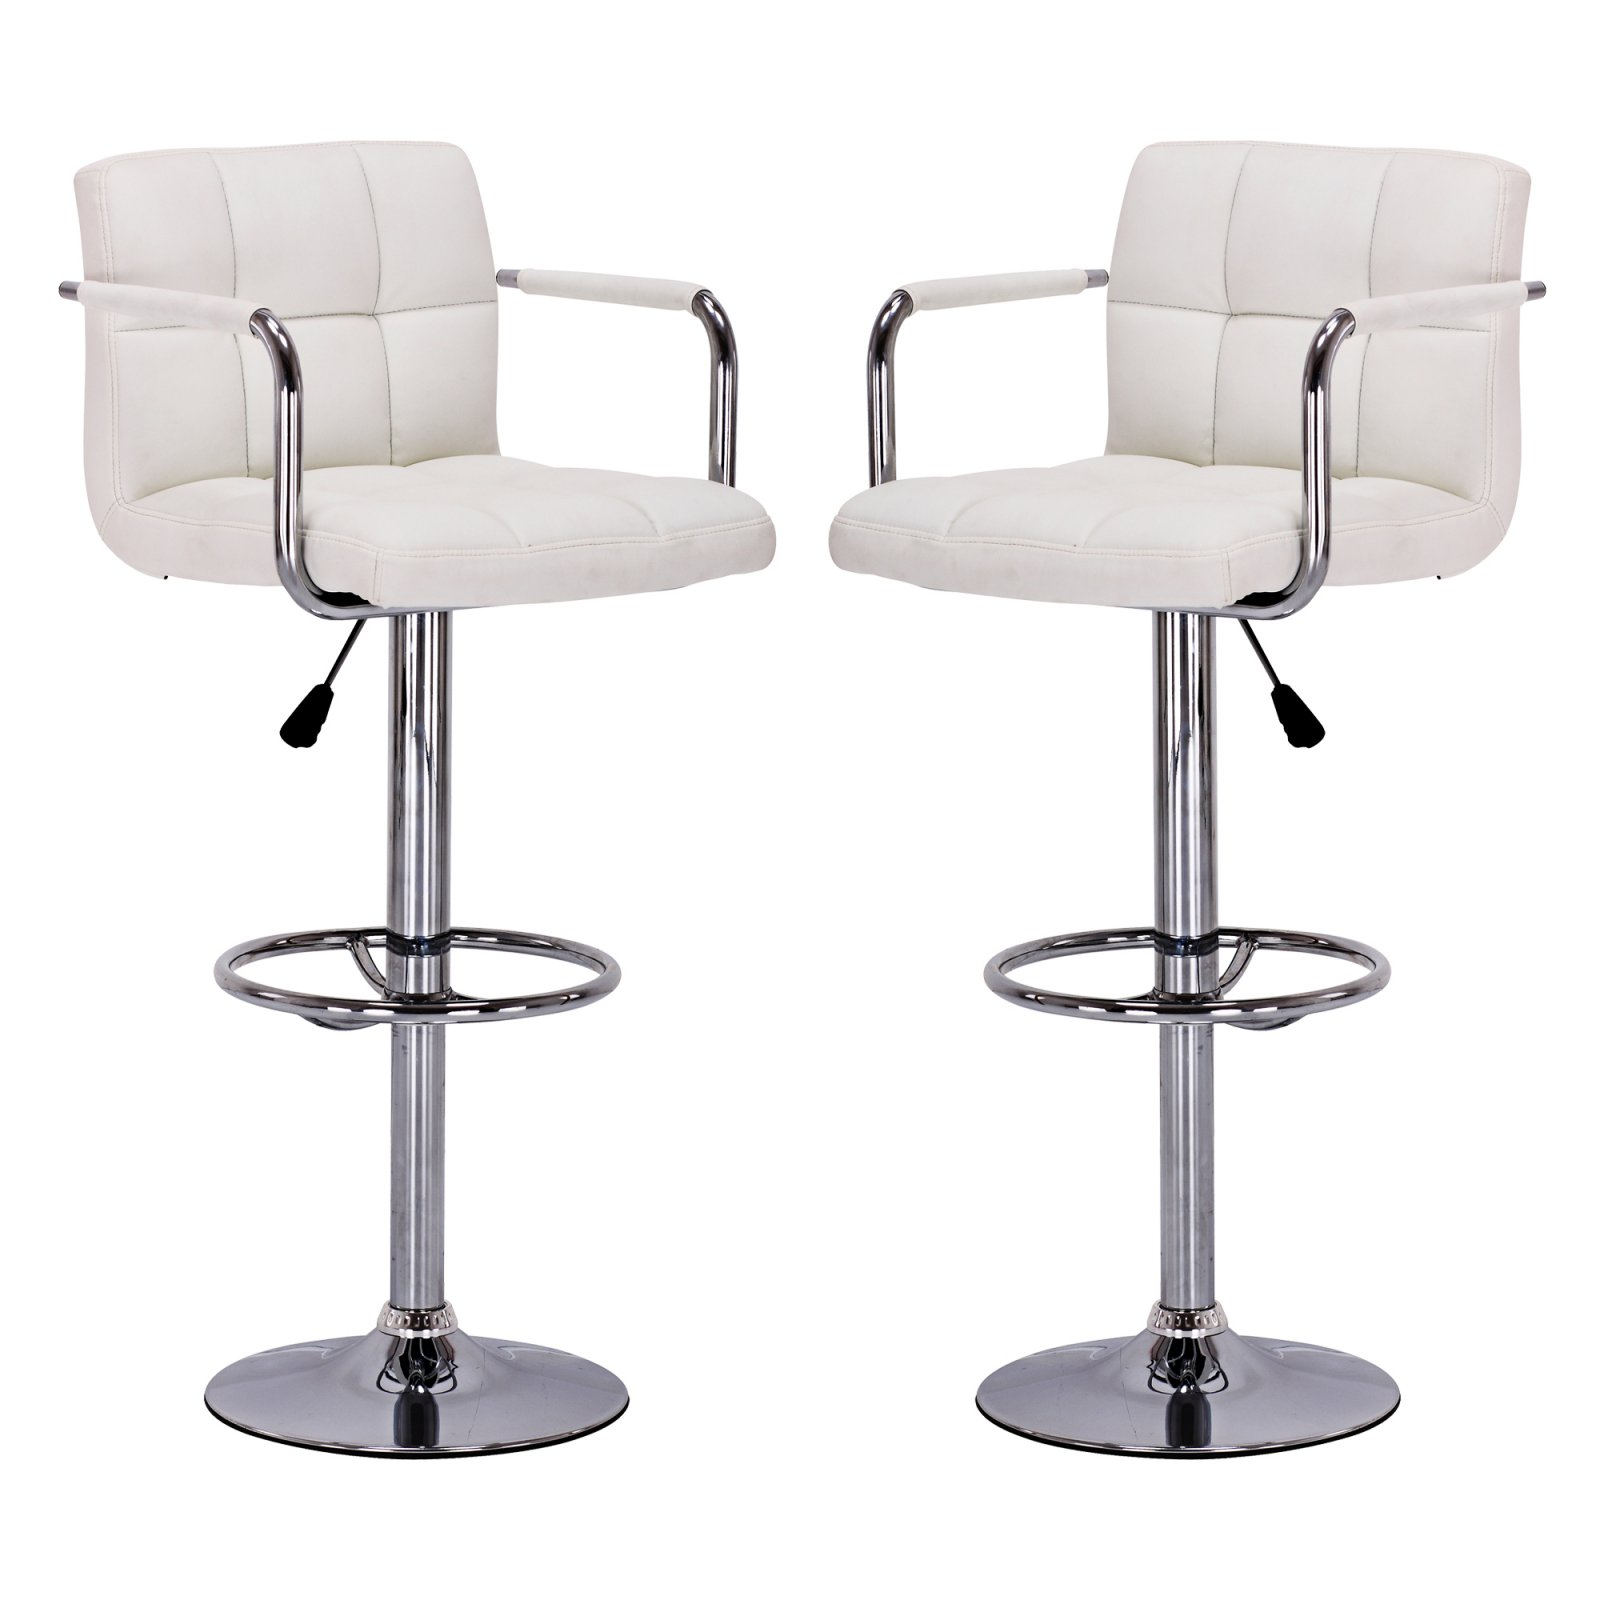 Vogue Furniture Direct Adjustable Height Swivel Bar Stools With